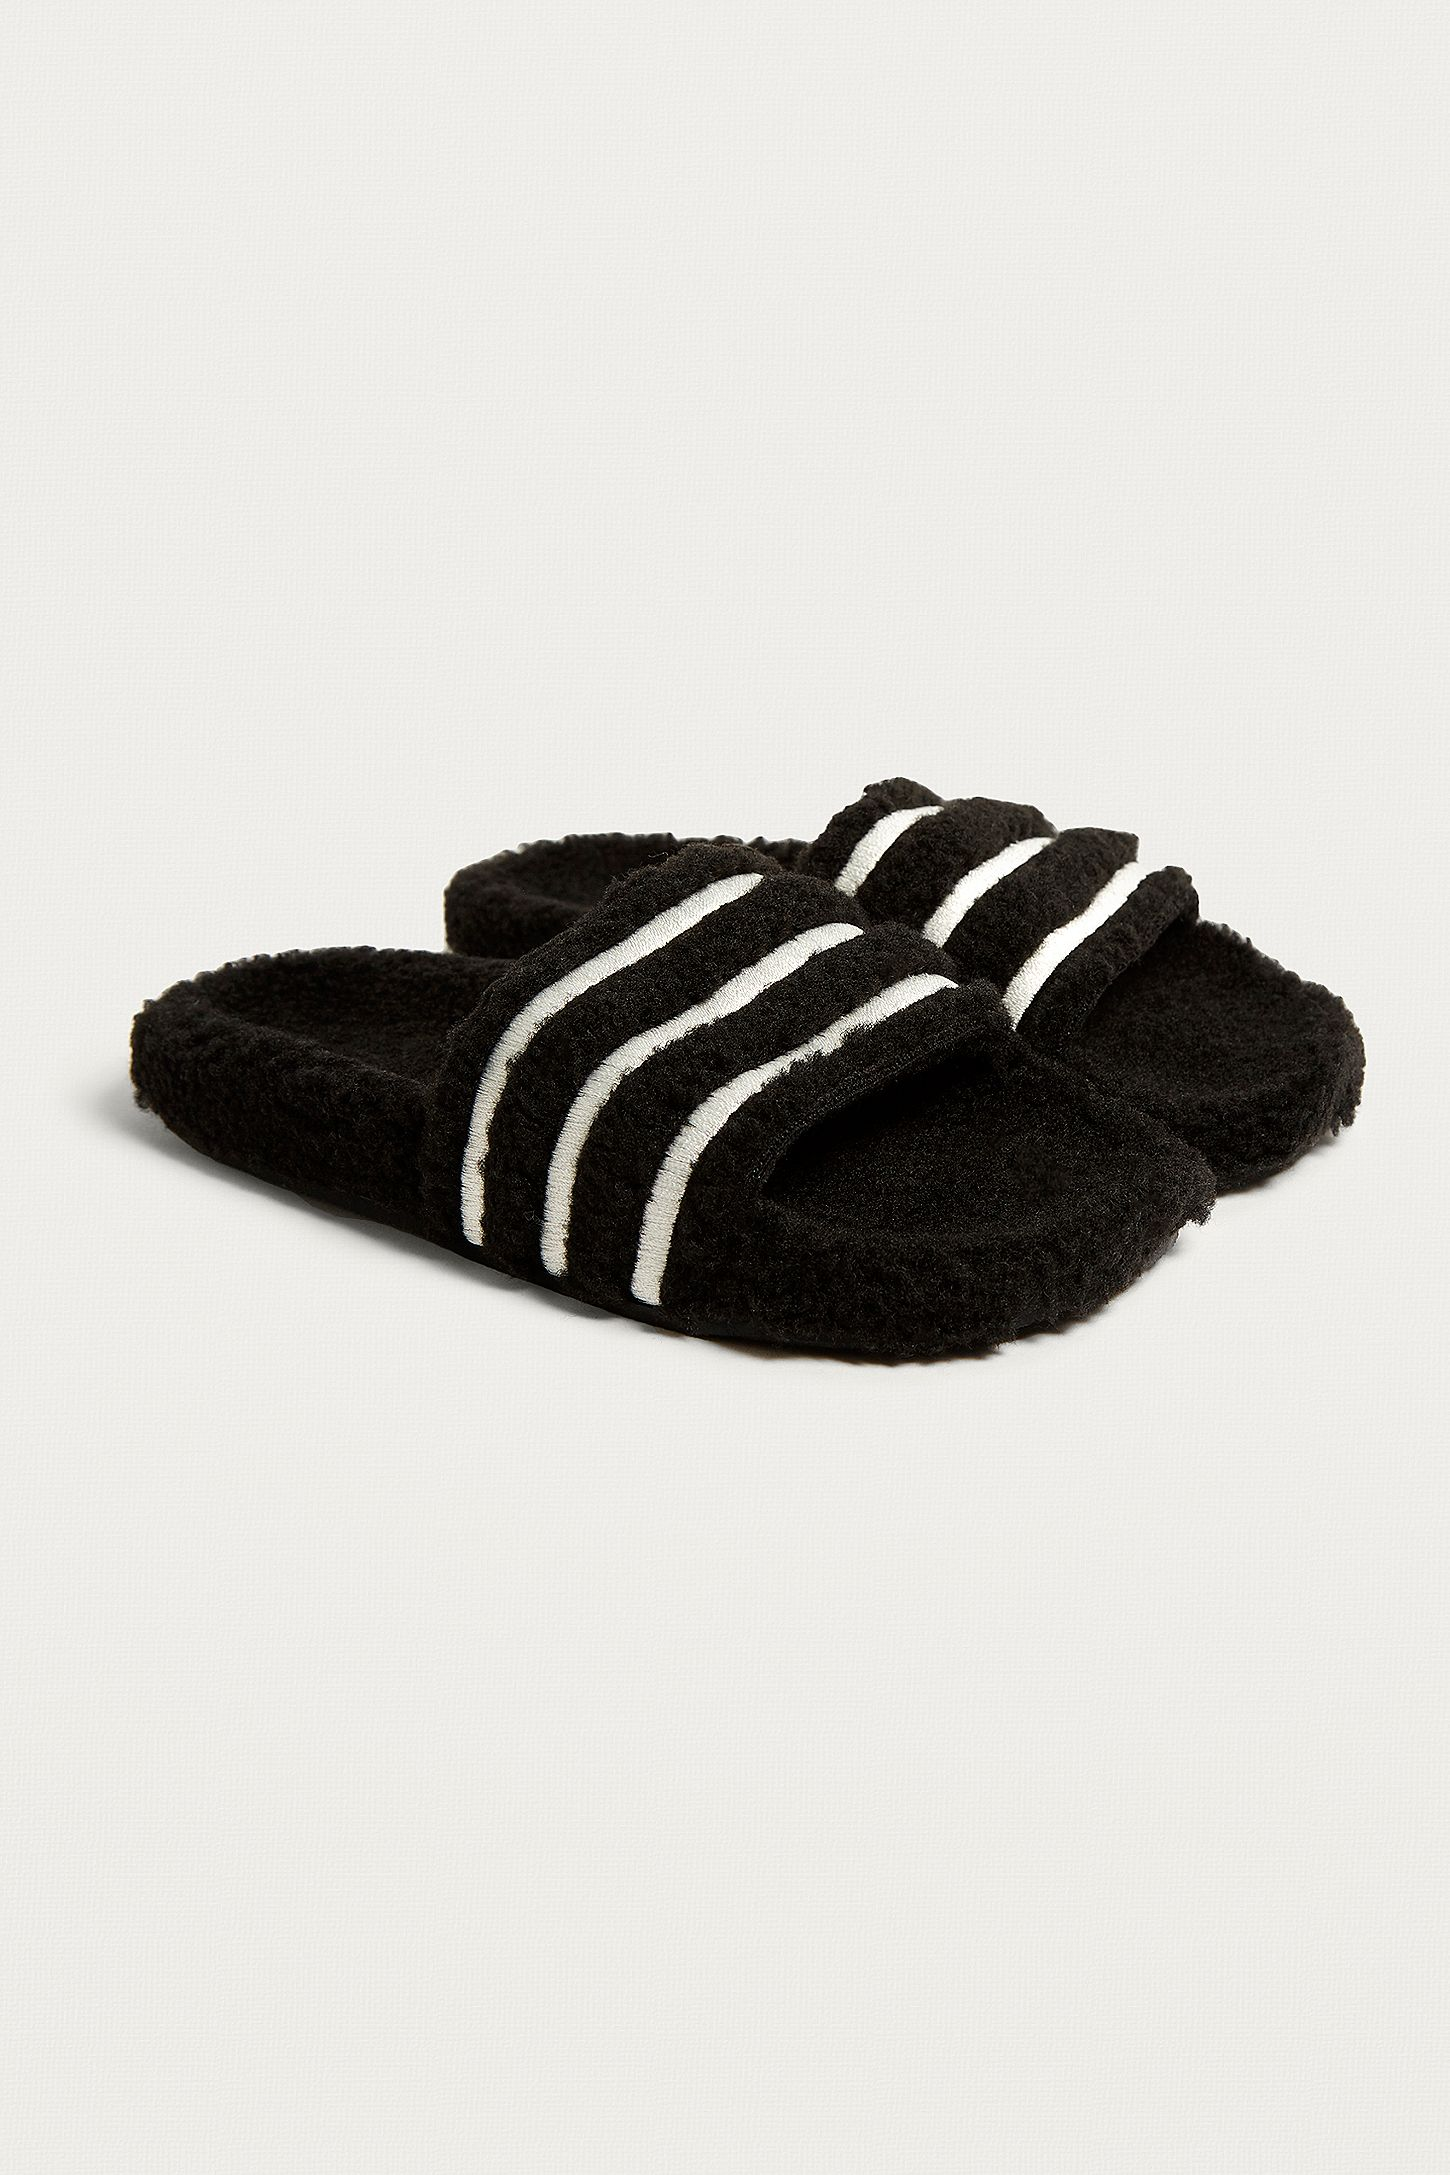 23b6d3b20 adidas Originals Adilette Black Striped Teddy Slides. Click on image to  zoom. Hover to zoom. Double Tap to Zoom